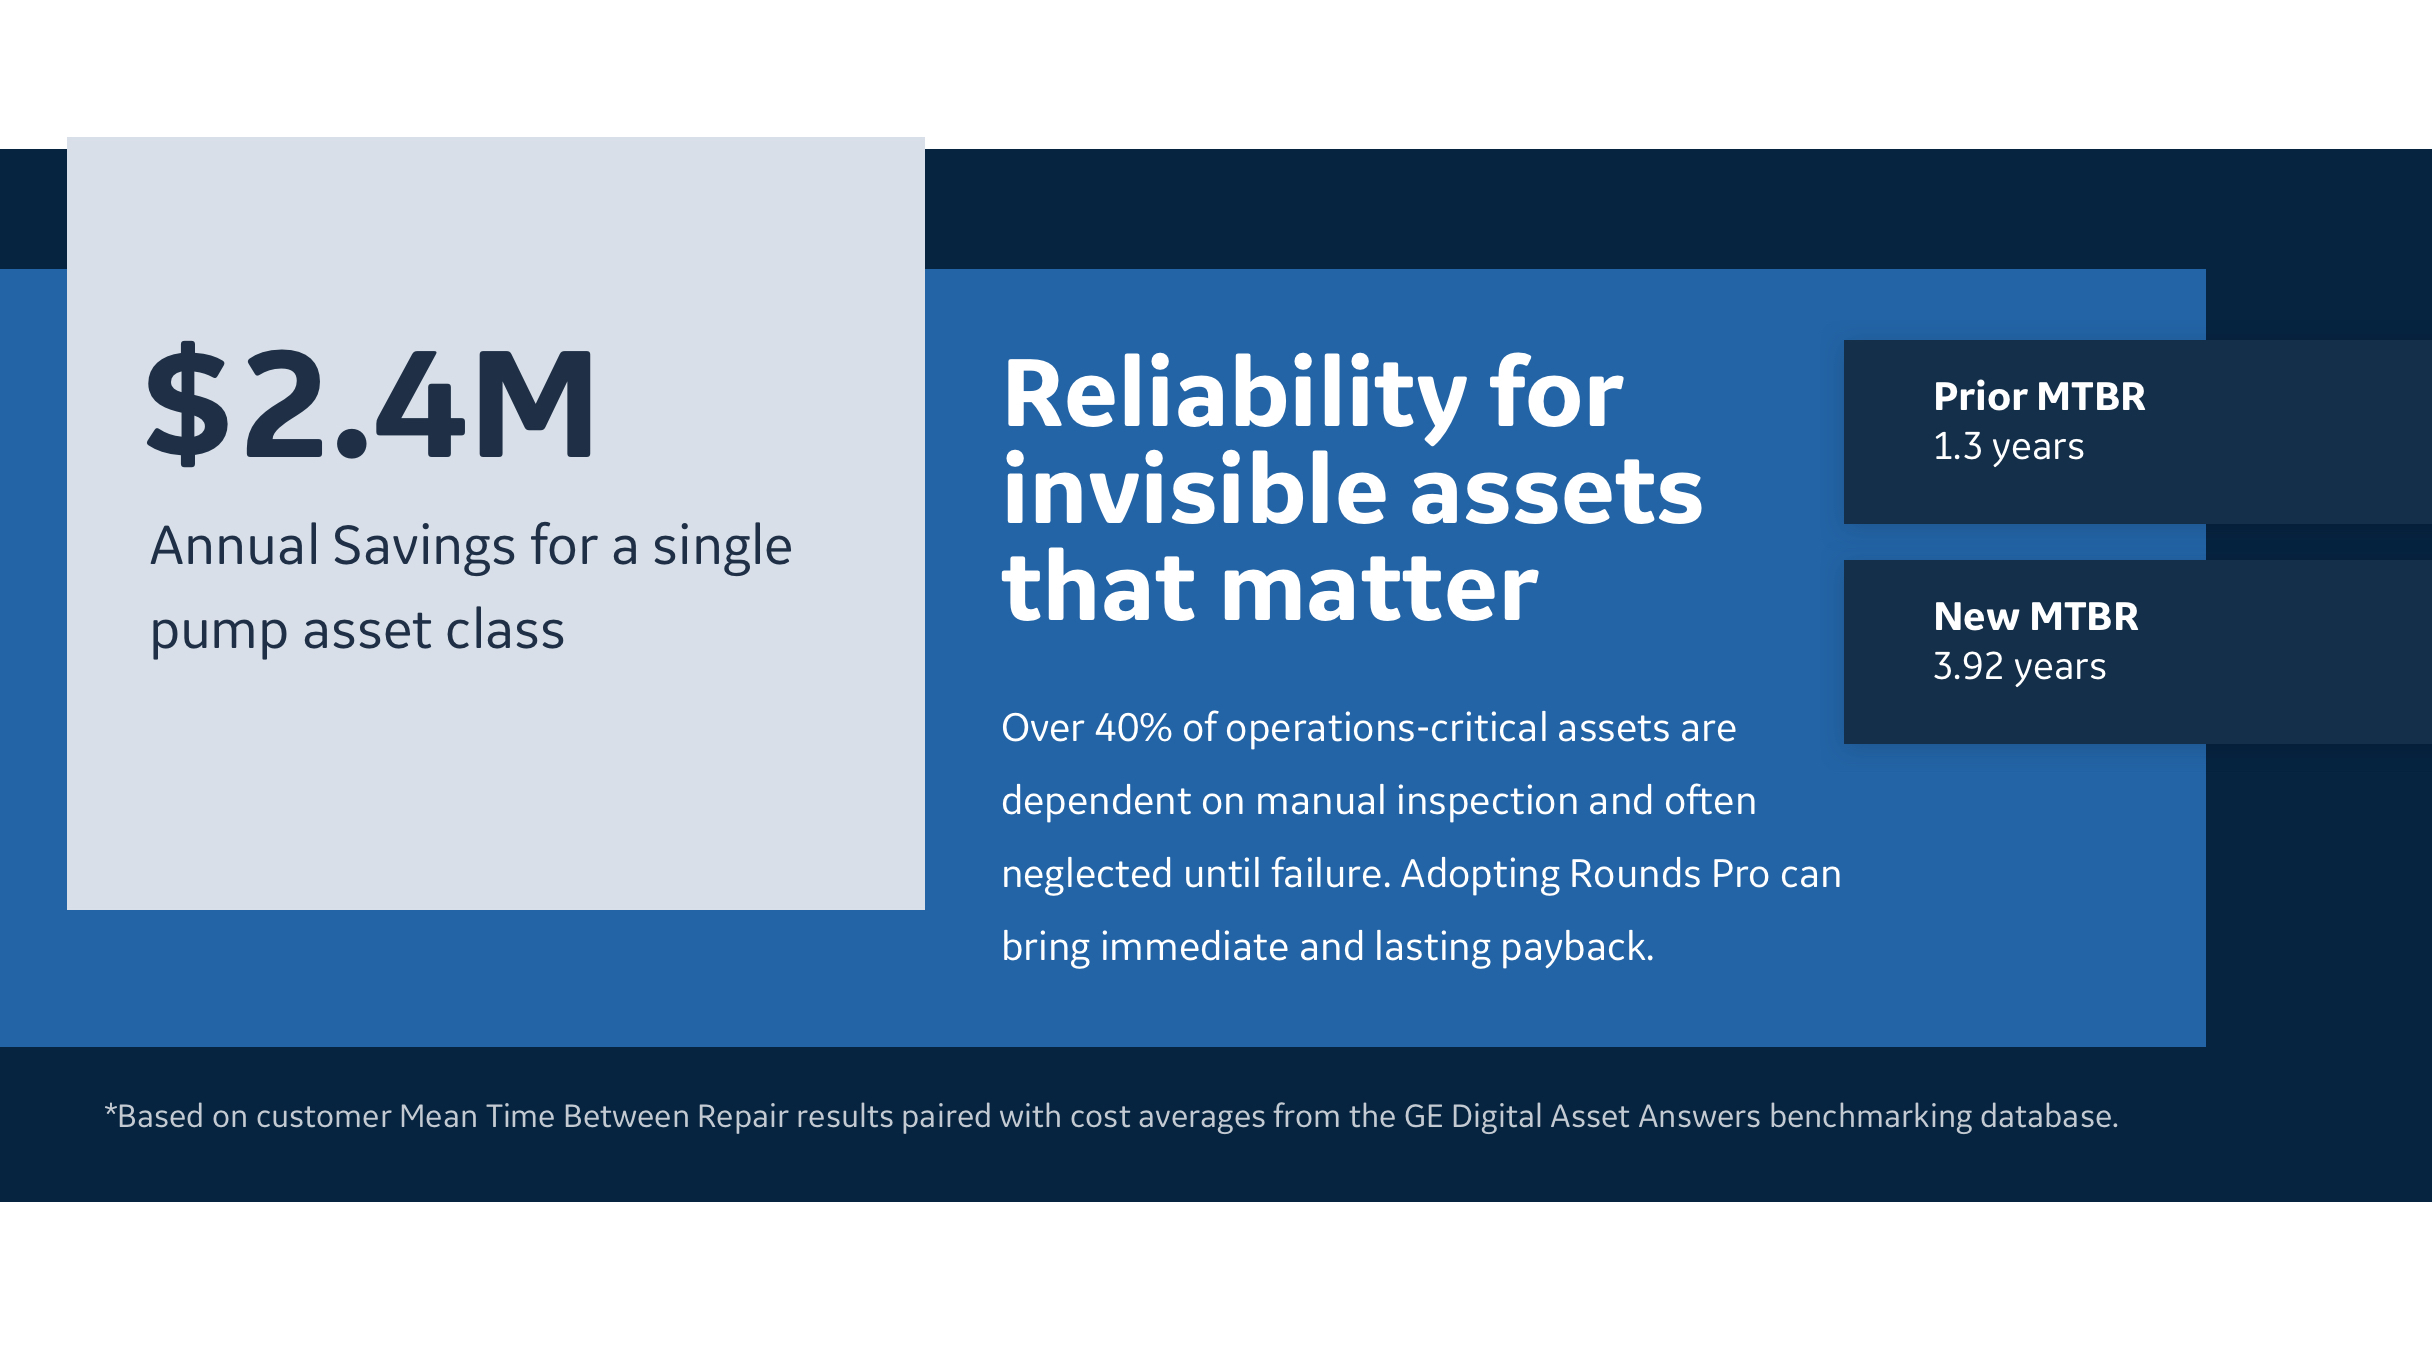 Over 40 percent of operations-critical assets are dependent on manual inspection and often neglected until failure I Adopting Rounds Pro can bring immediate and lasting payback.